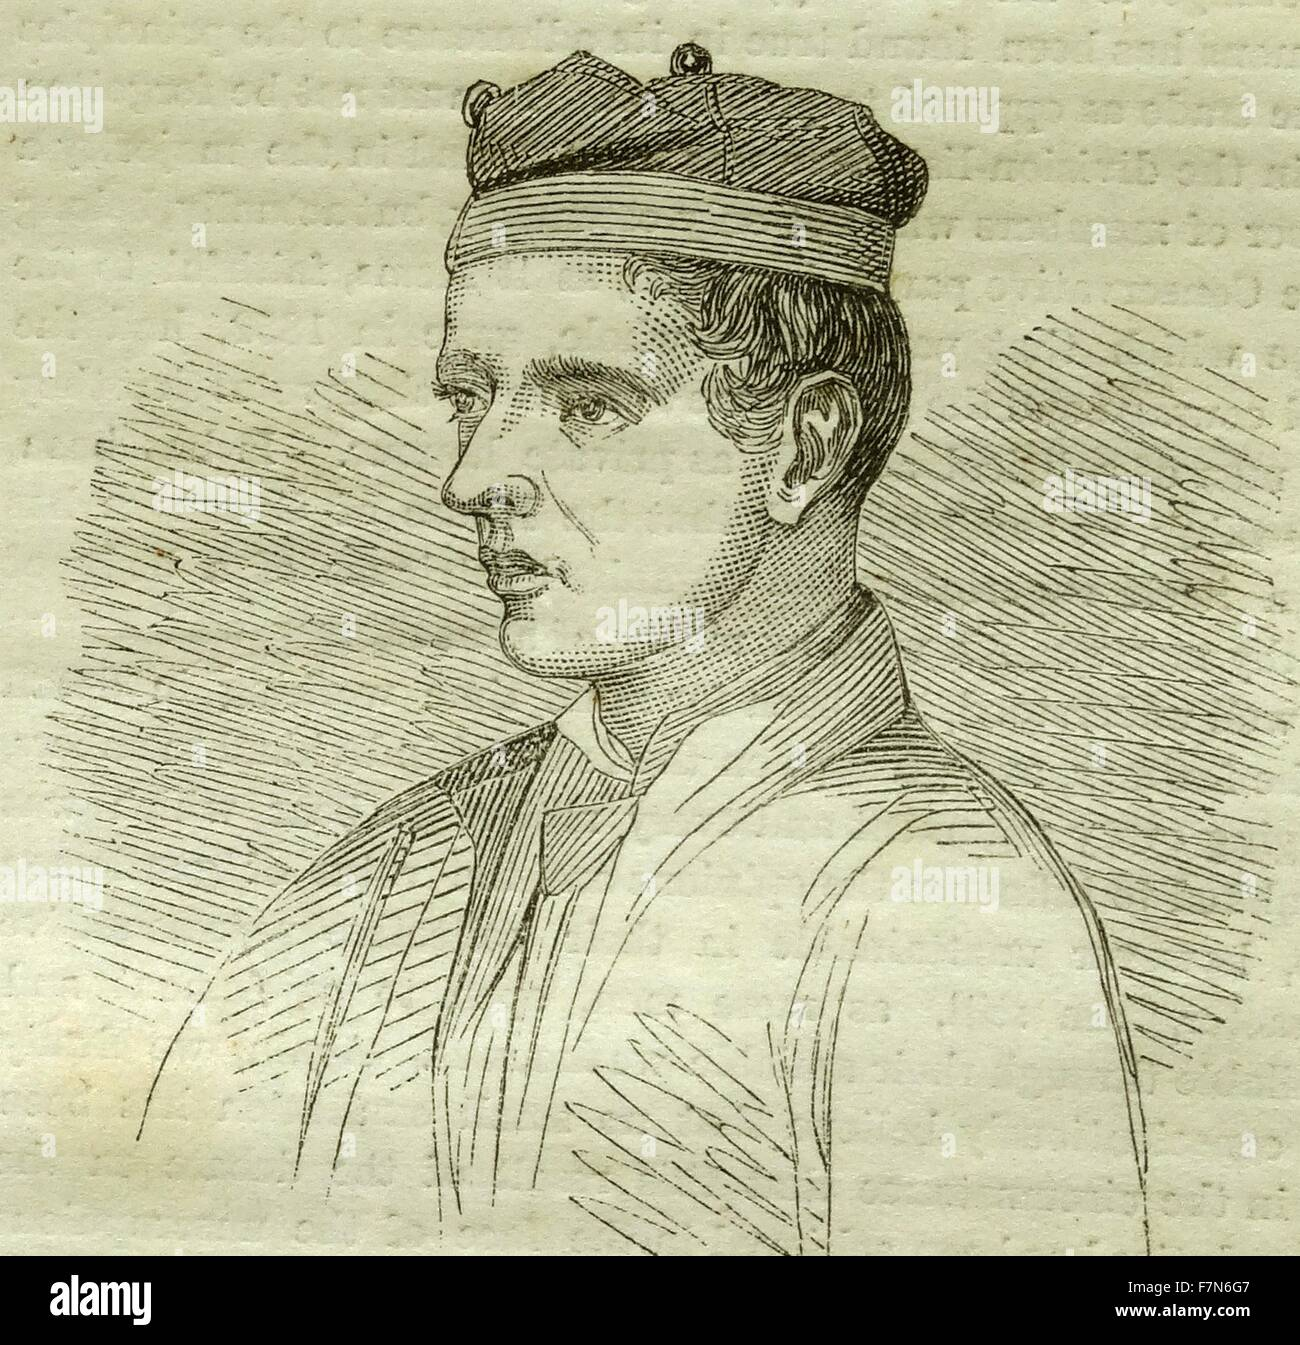 Peter Cunningham, of the English Battalion. 1860 - Stock Image